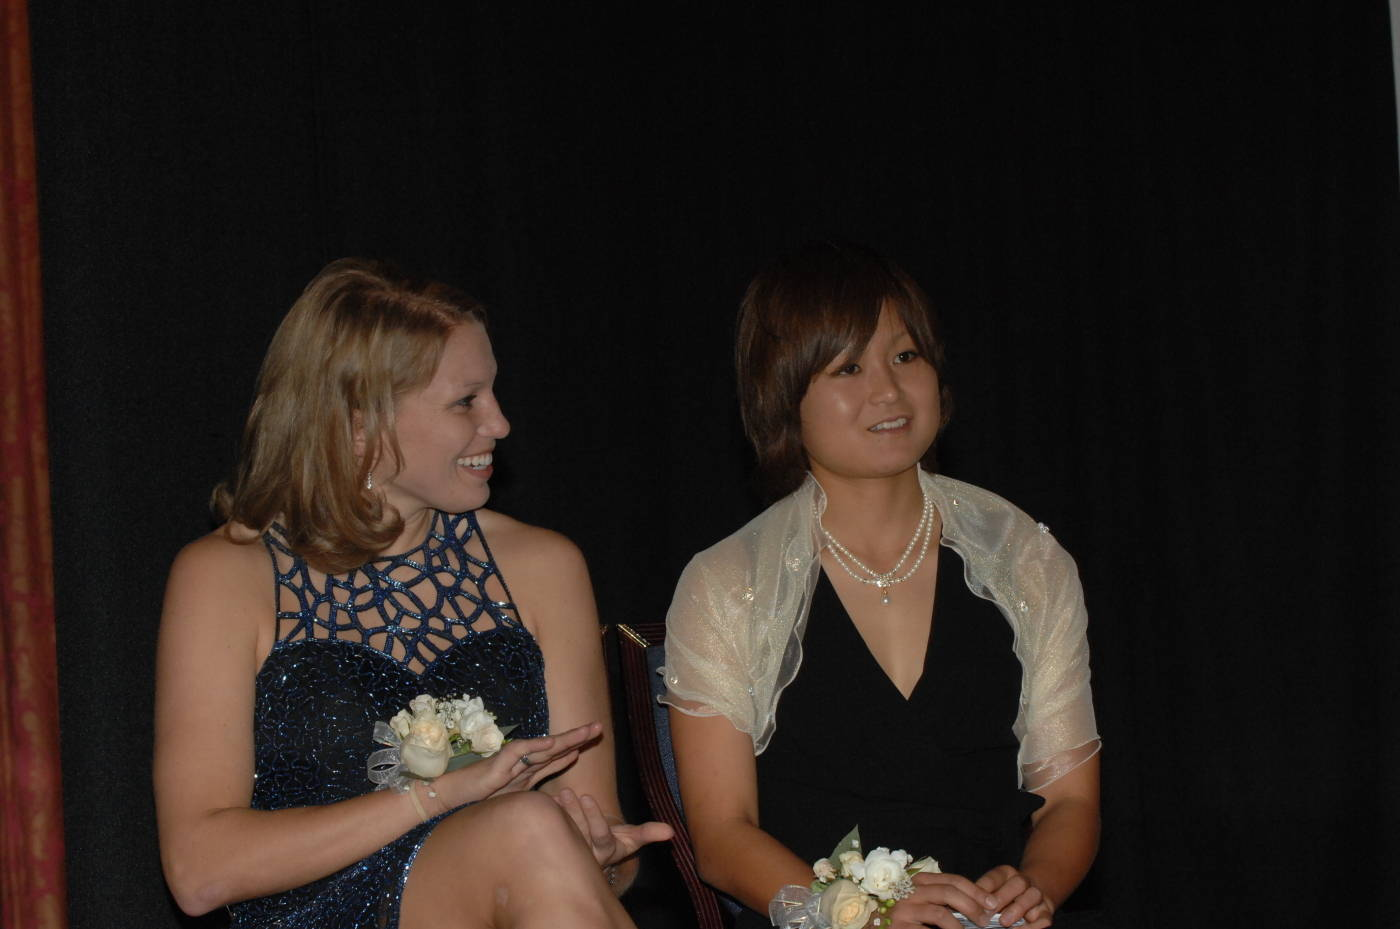 (L to R) Texas A&M's Ashlee Pistorius and FSU's Mami Yamaguchi await the announcment of the winner of the 2007 Hermann Trophy.